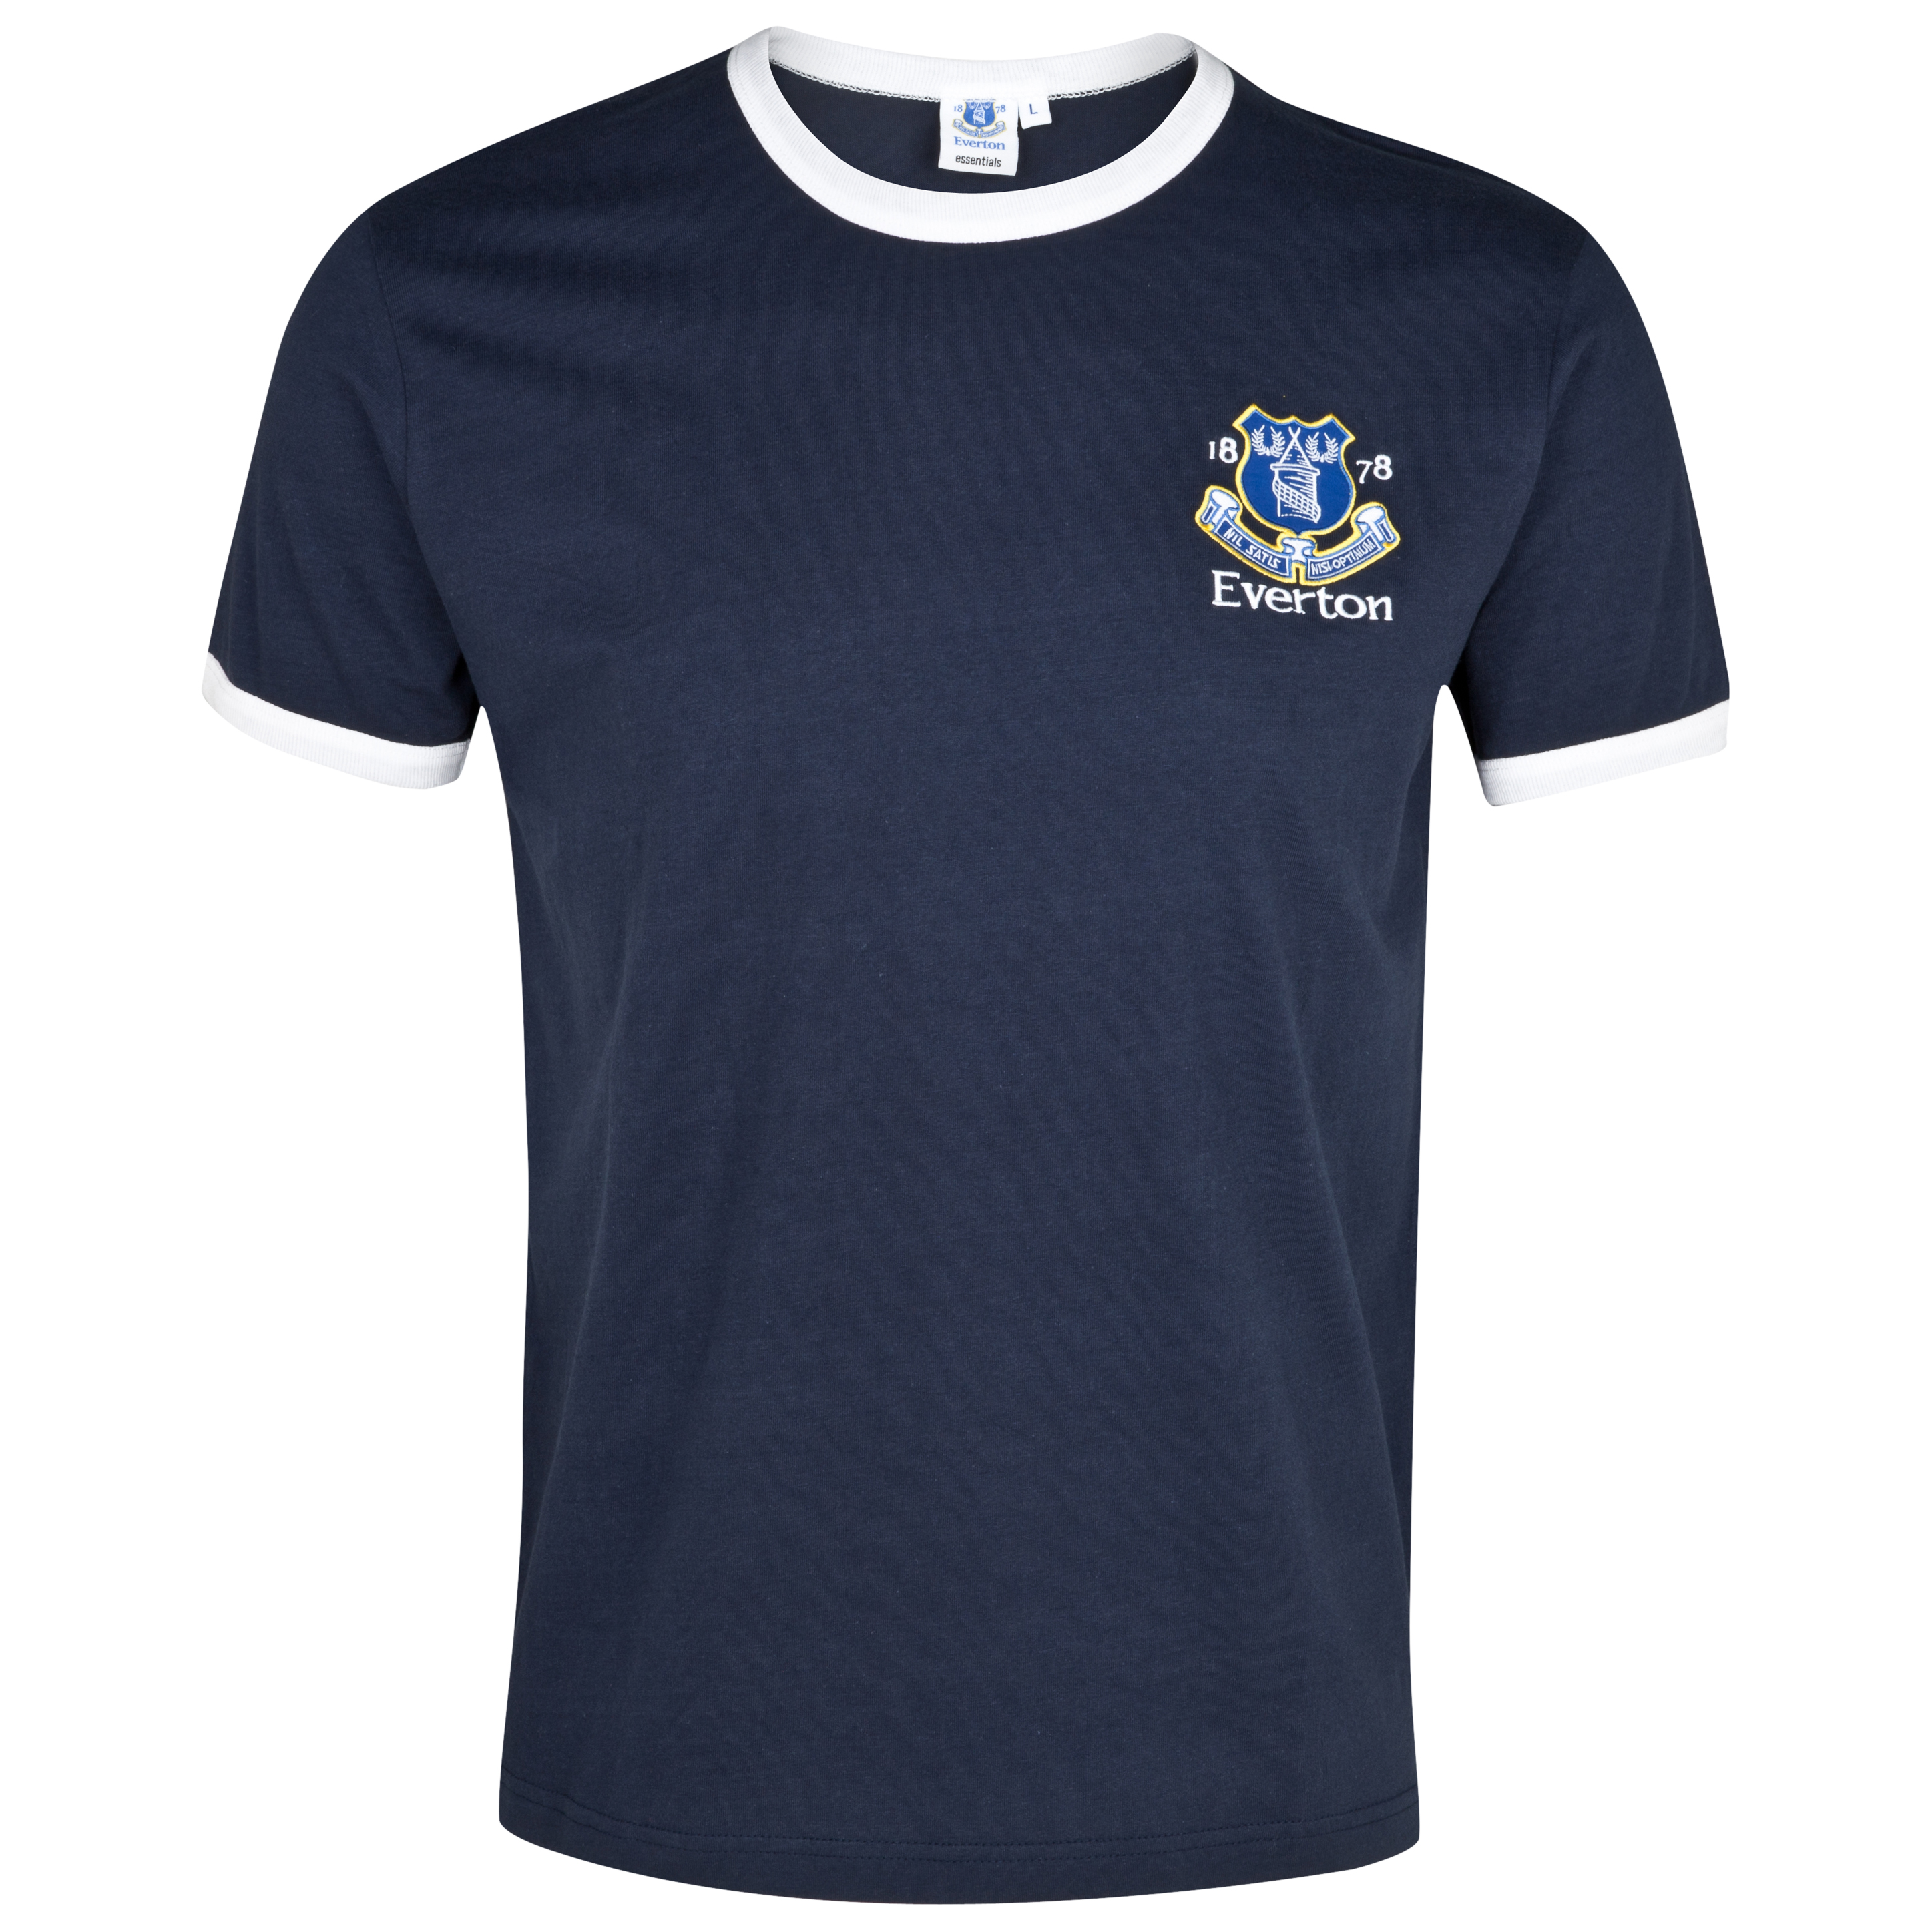 Everton Essentials Ringed T-Shirt - Navy